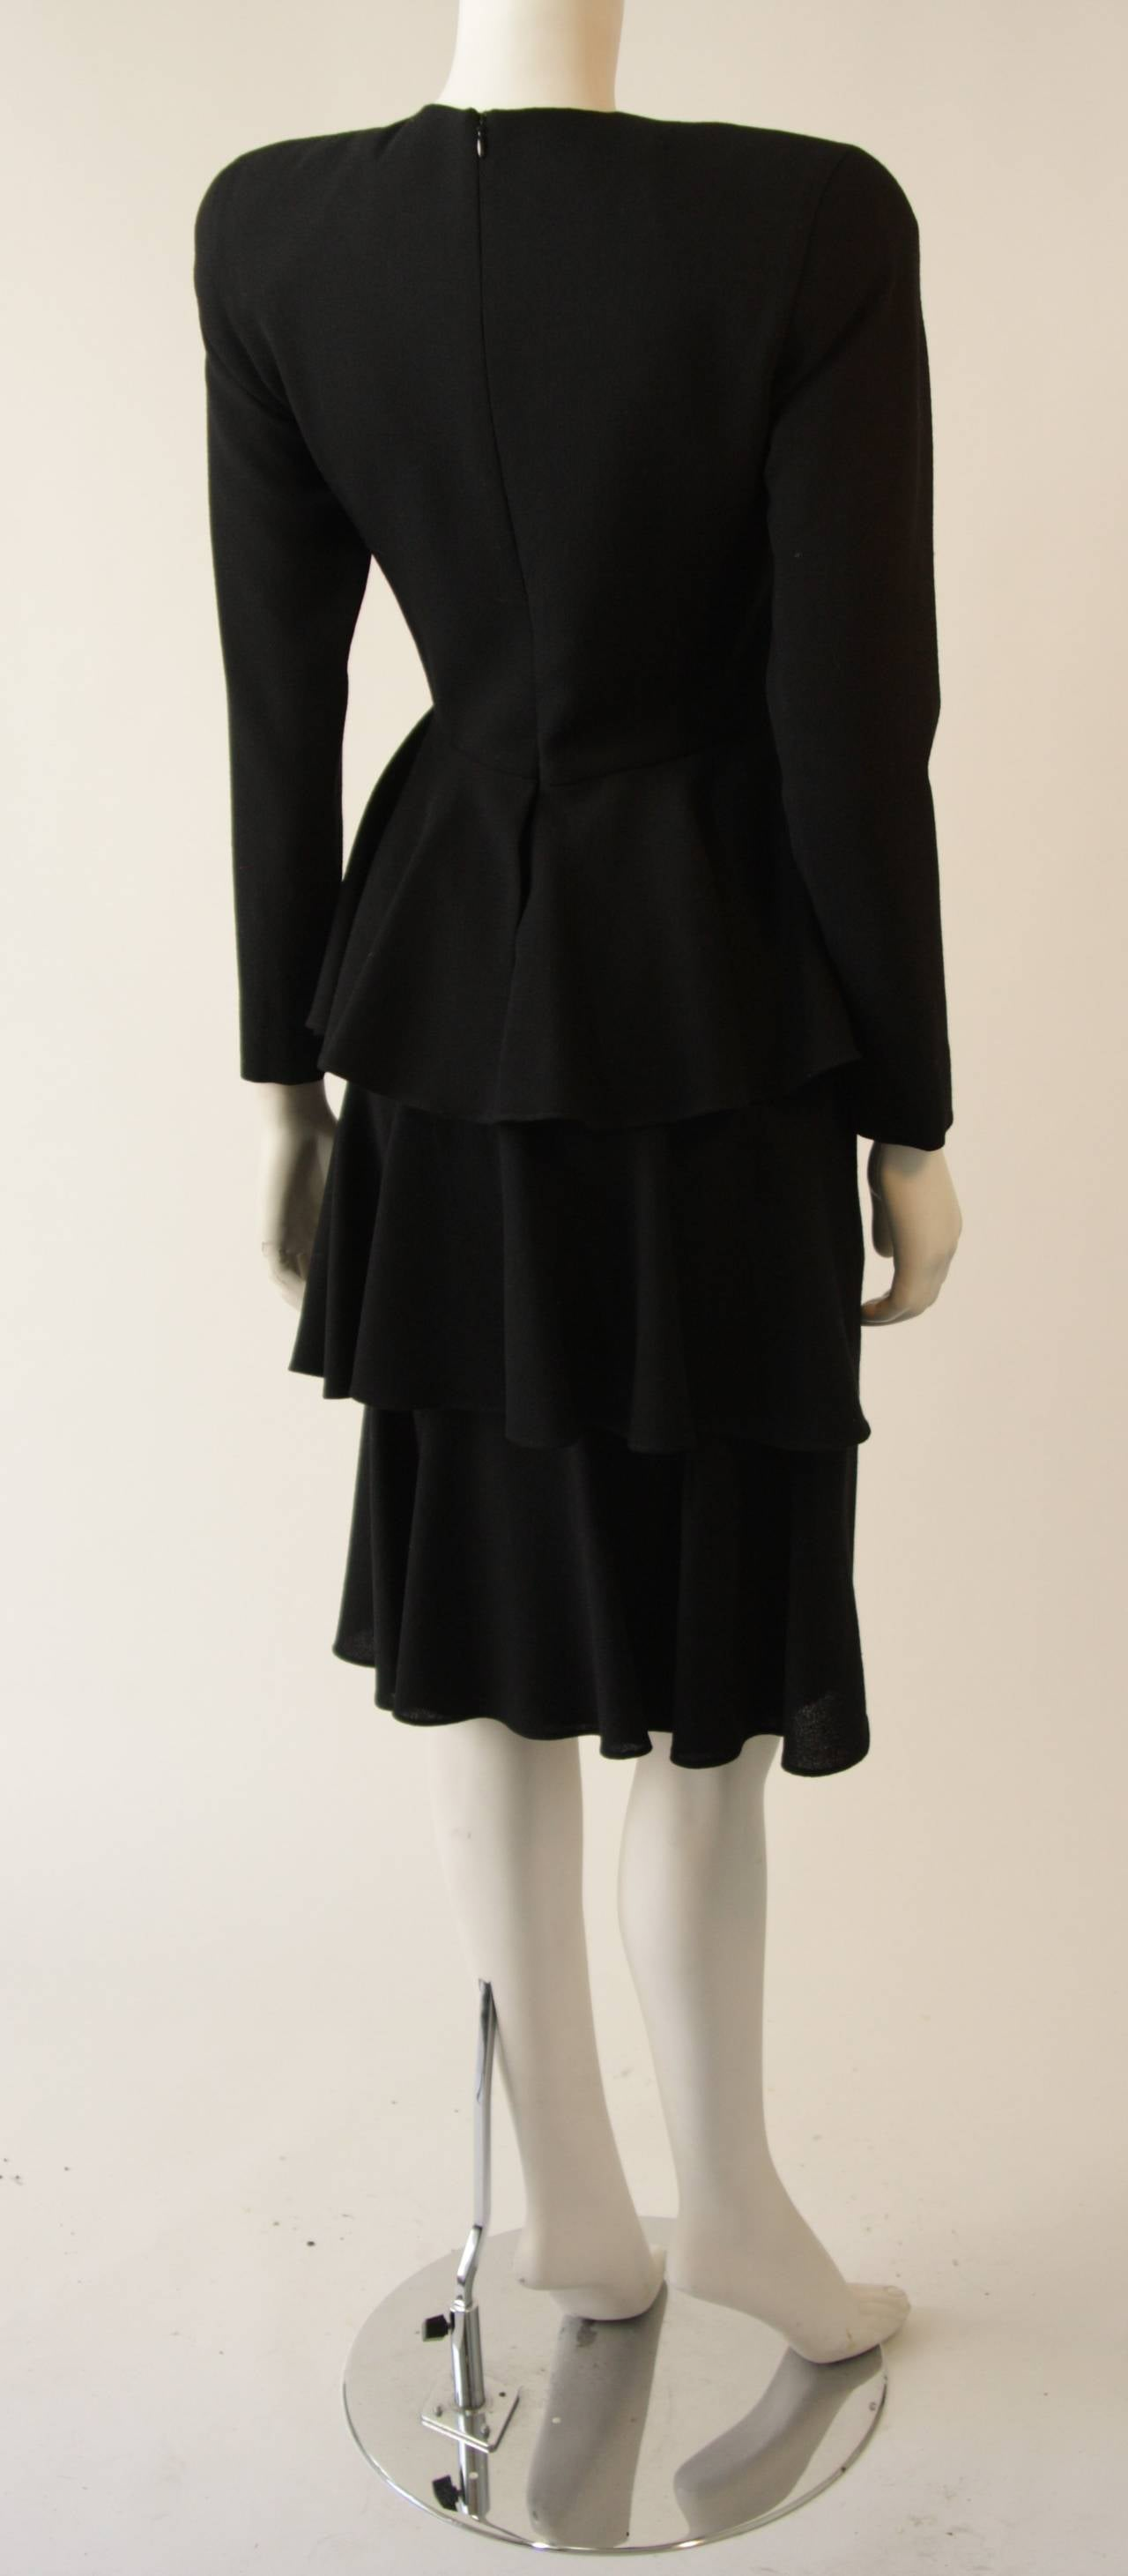 Anne Klein Black Wool Cocktail Dress with Ruffle Detail 6